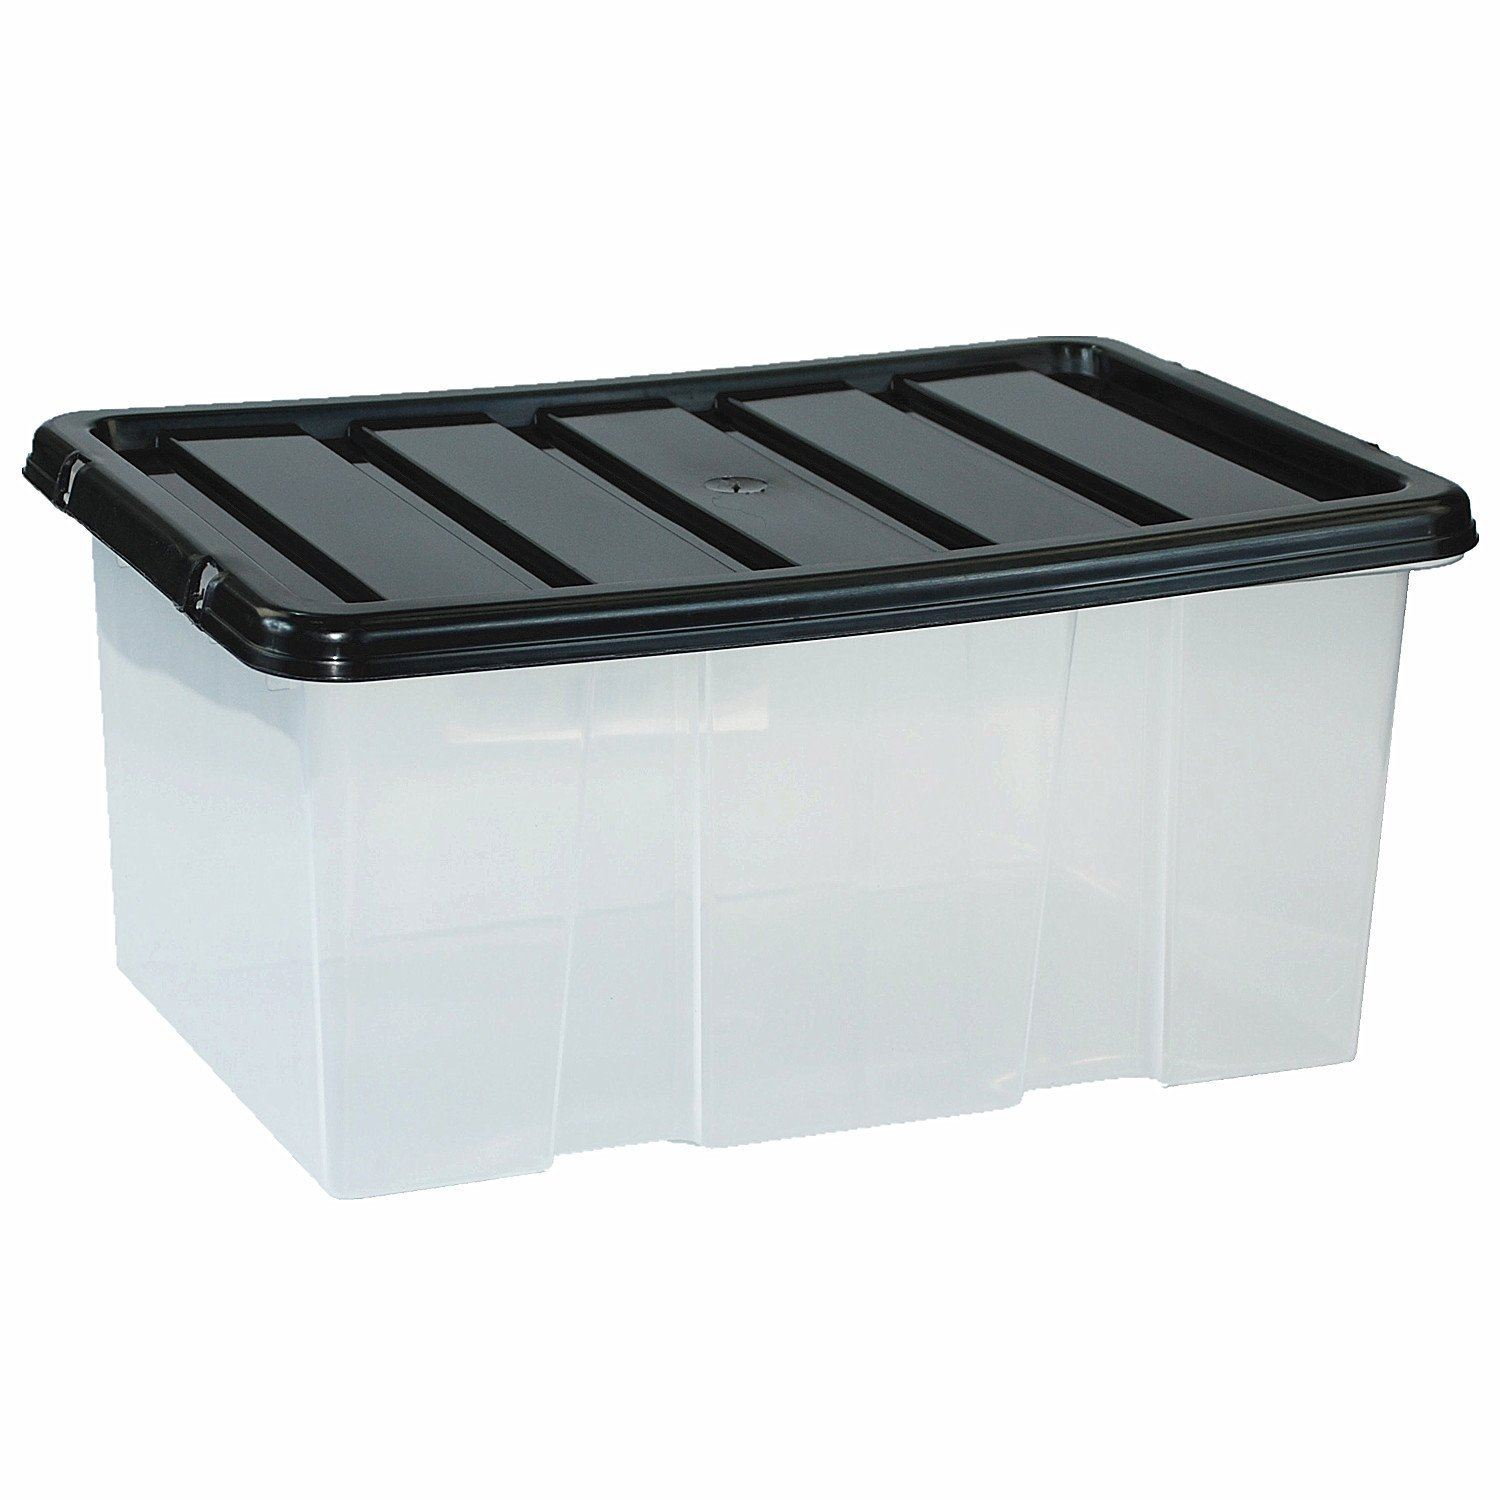 Large Plastic Storage Boxes Large Plastic Storage Clear Box With Lid Container Made In